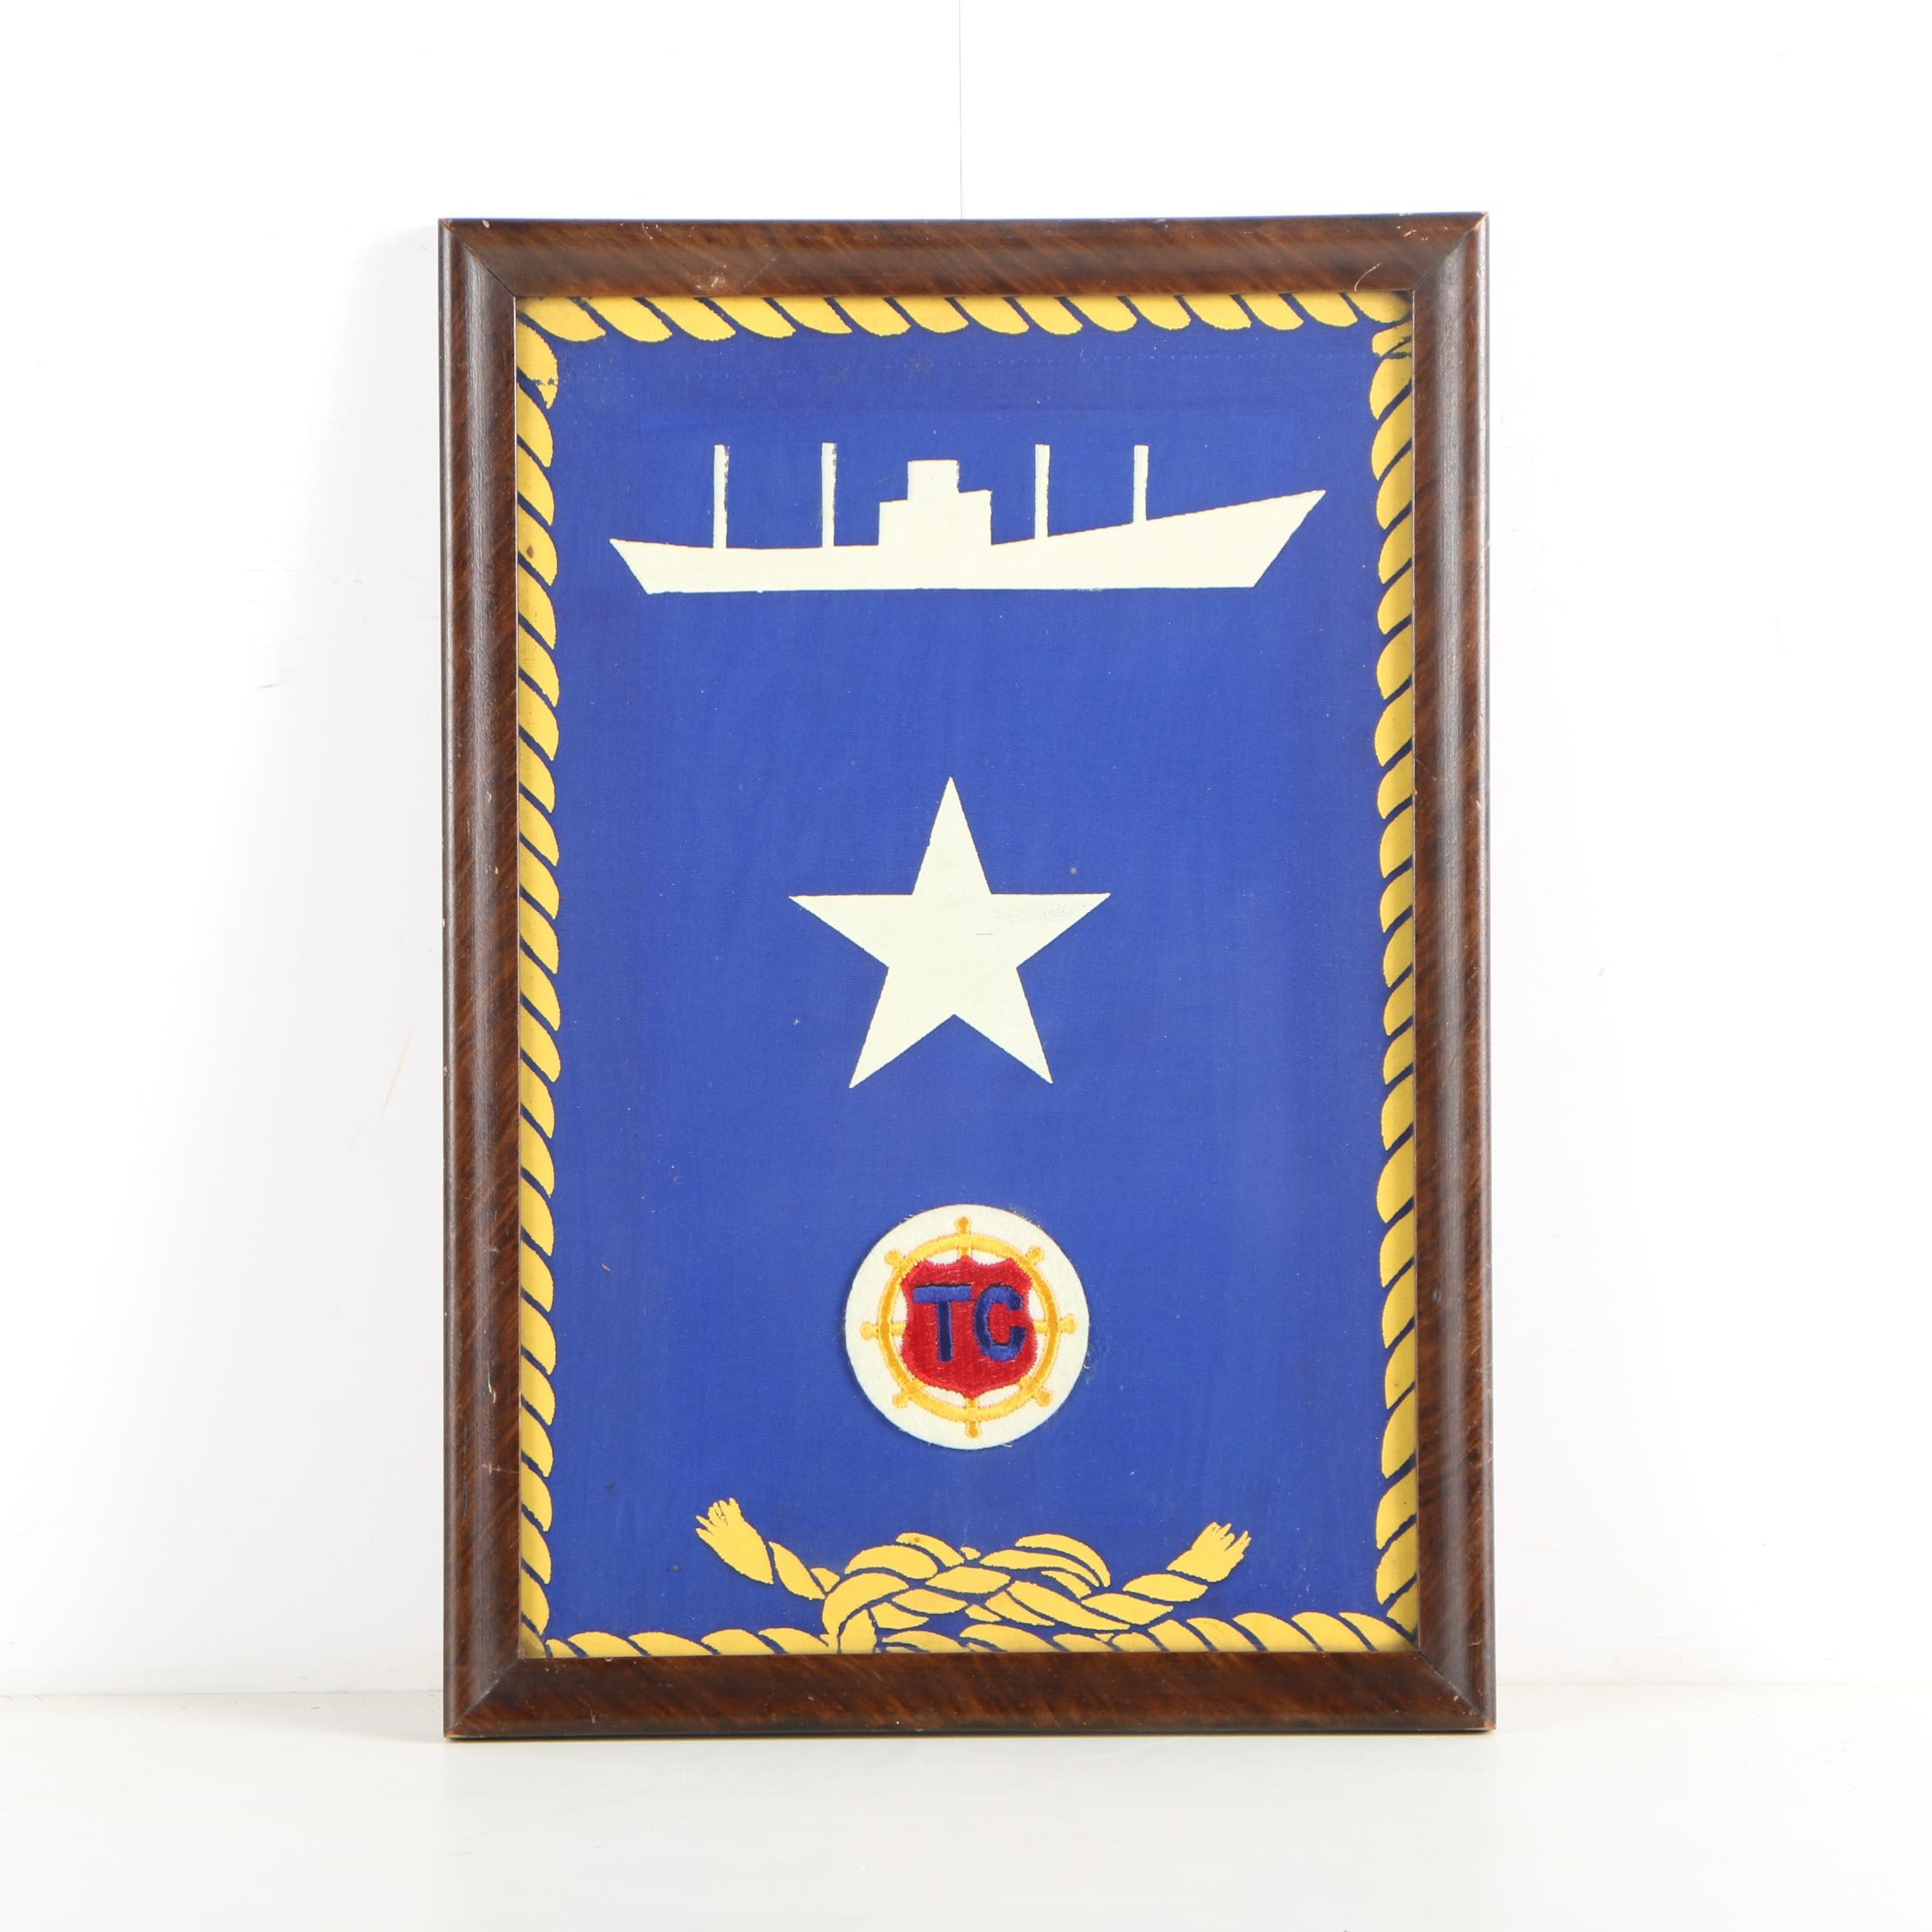 Naval Patch on Stencil Painted Fabric